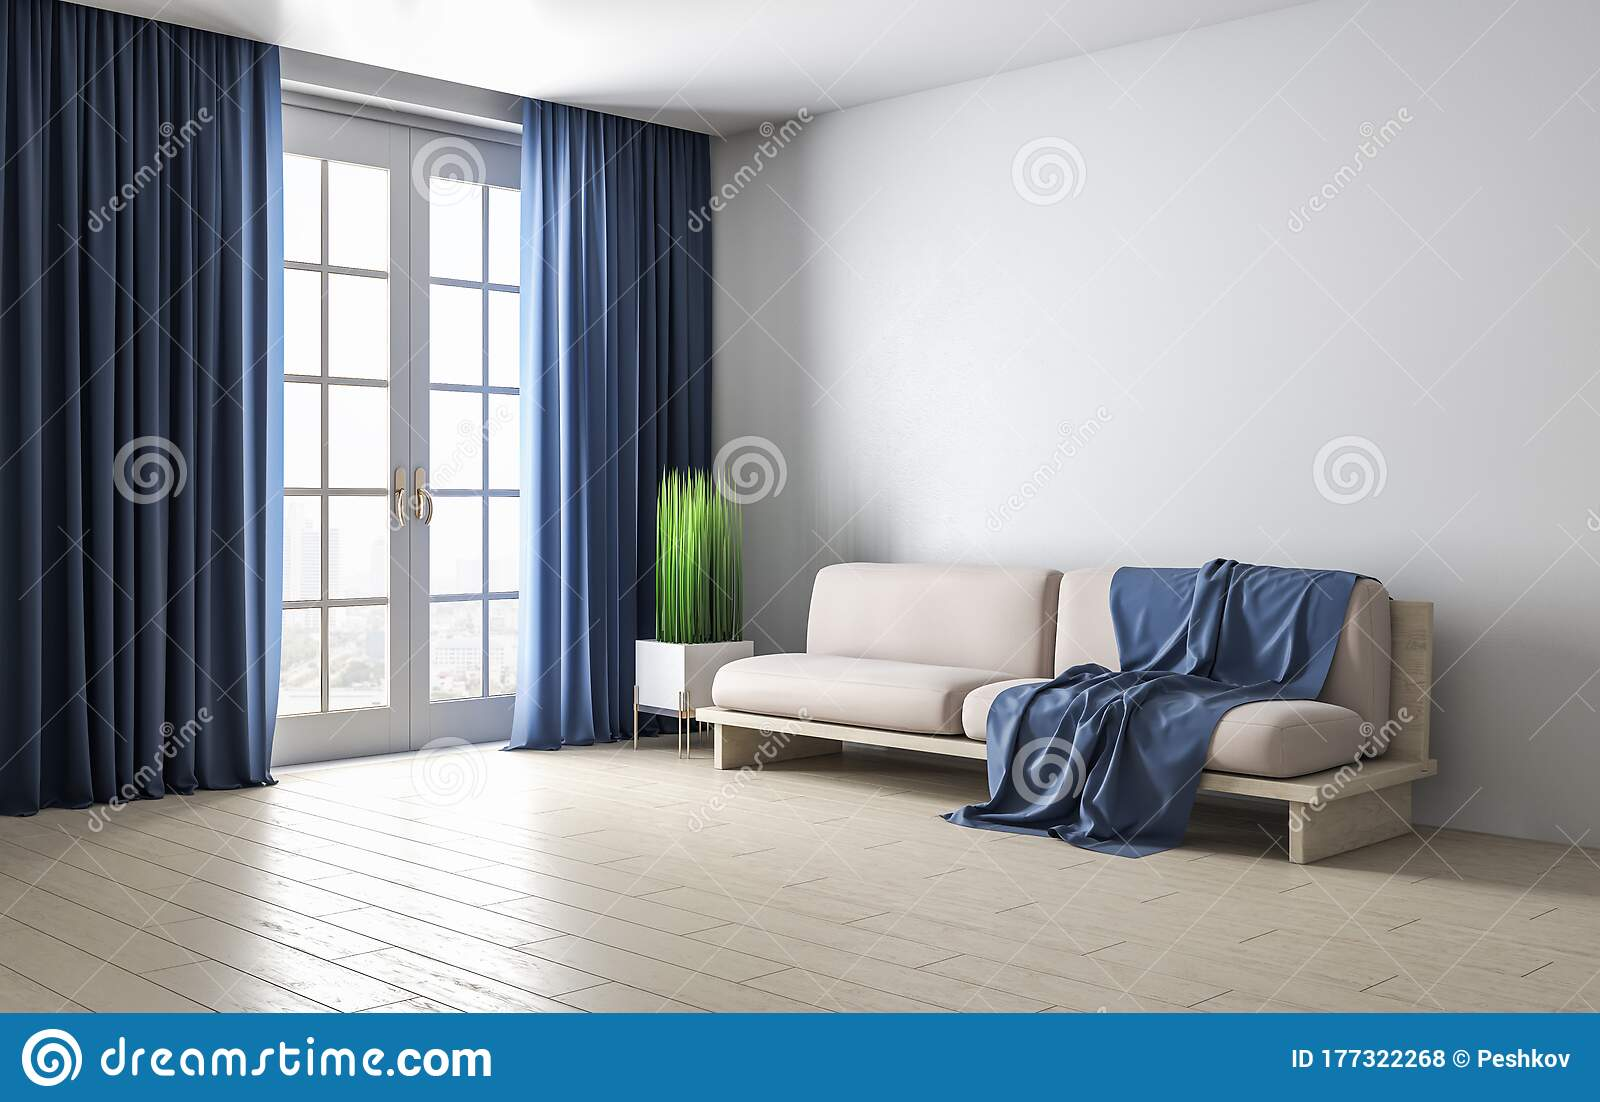 Modern Living Room With Sofa Curtains And Window Stock Illustration Illustration Of Armchair Background 177322268